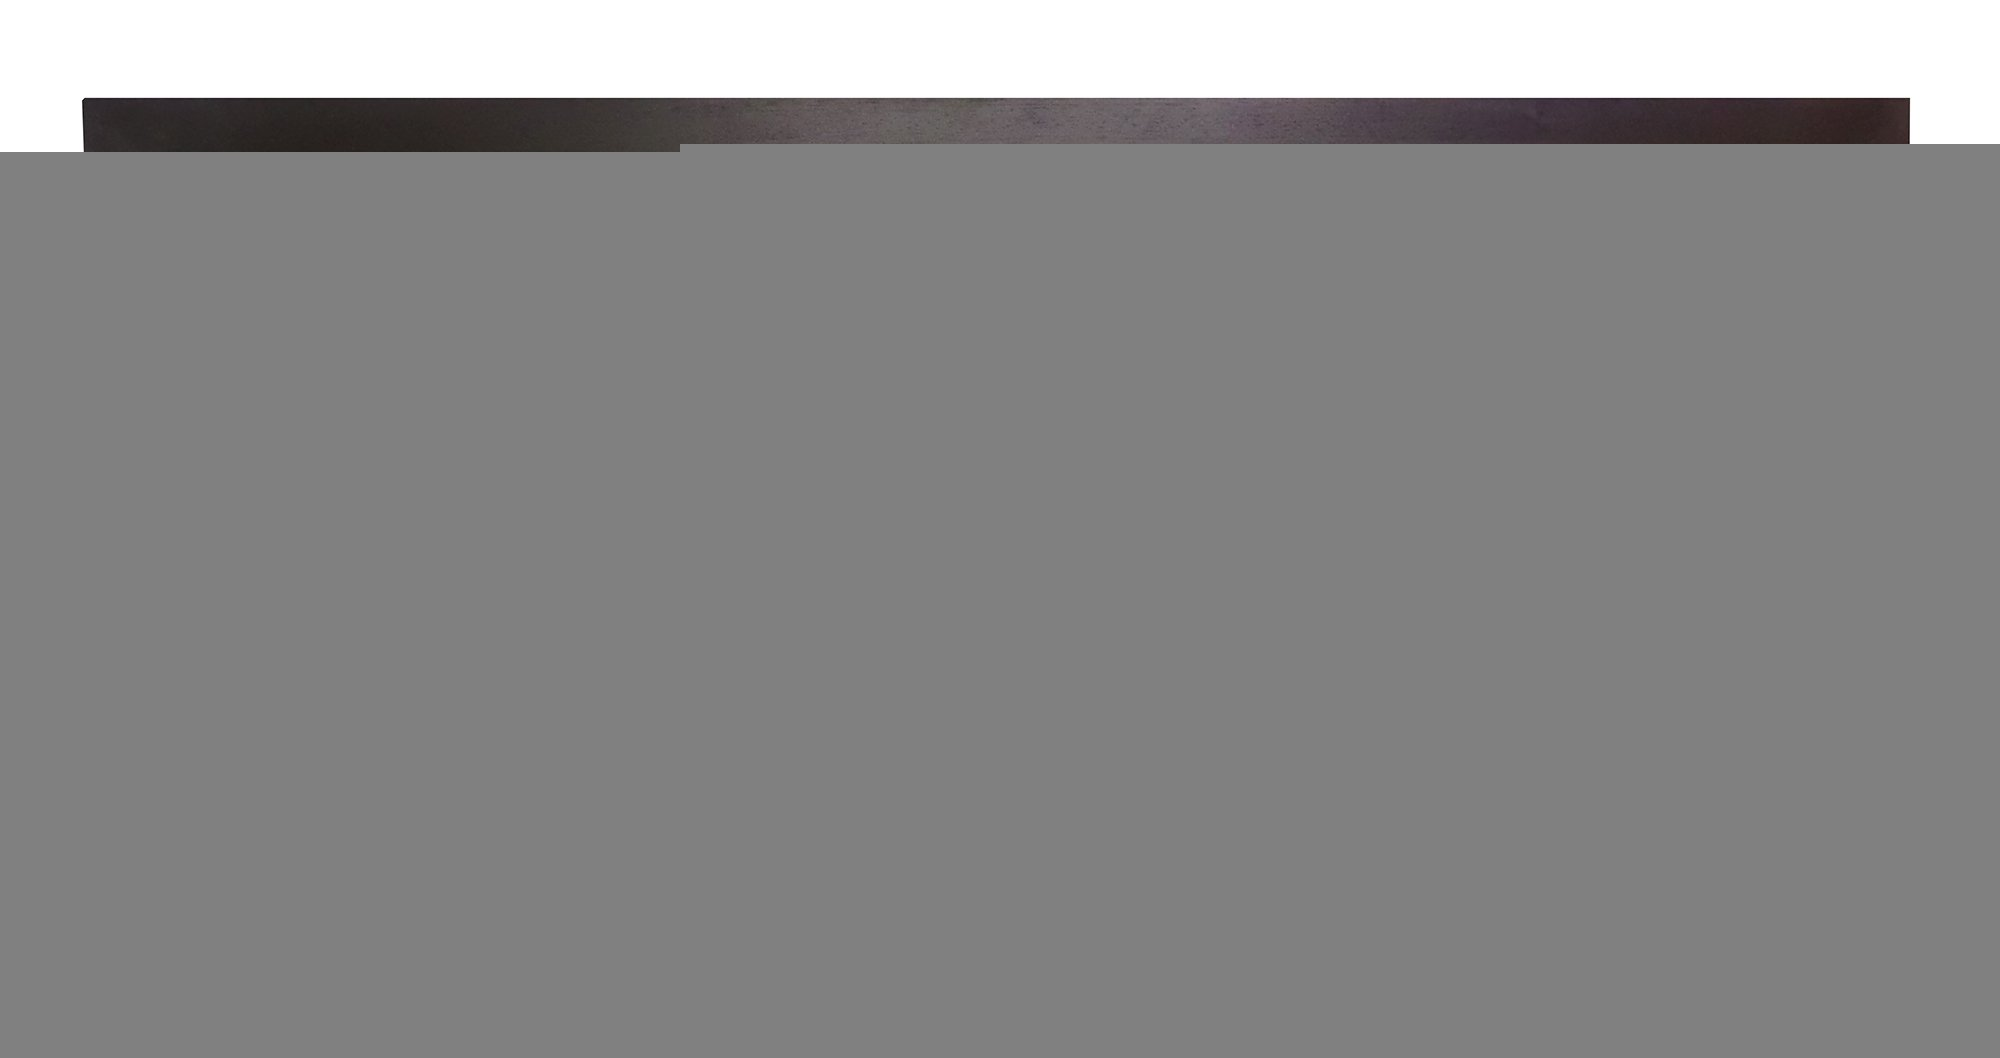 Painting of The Callanish Standing Stones, Isle of Lewis, Outer Hebrides, Scotland.